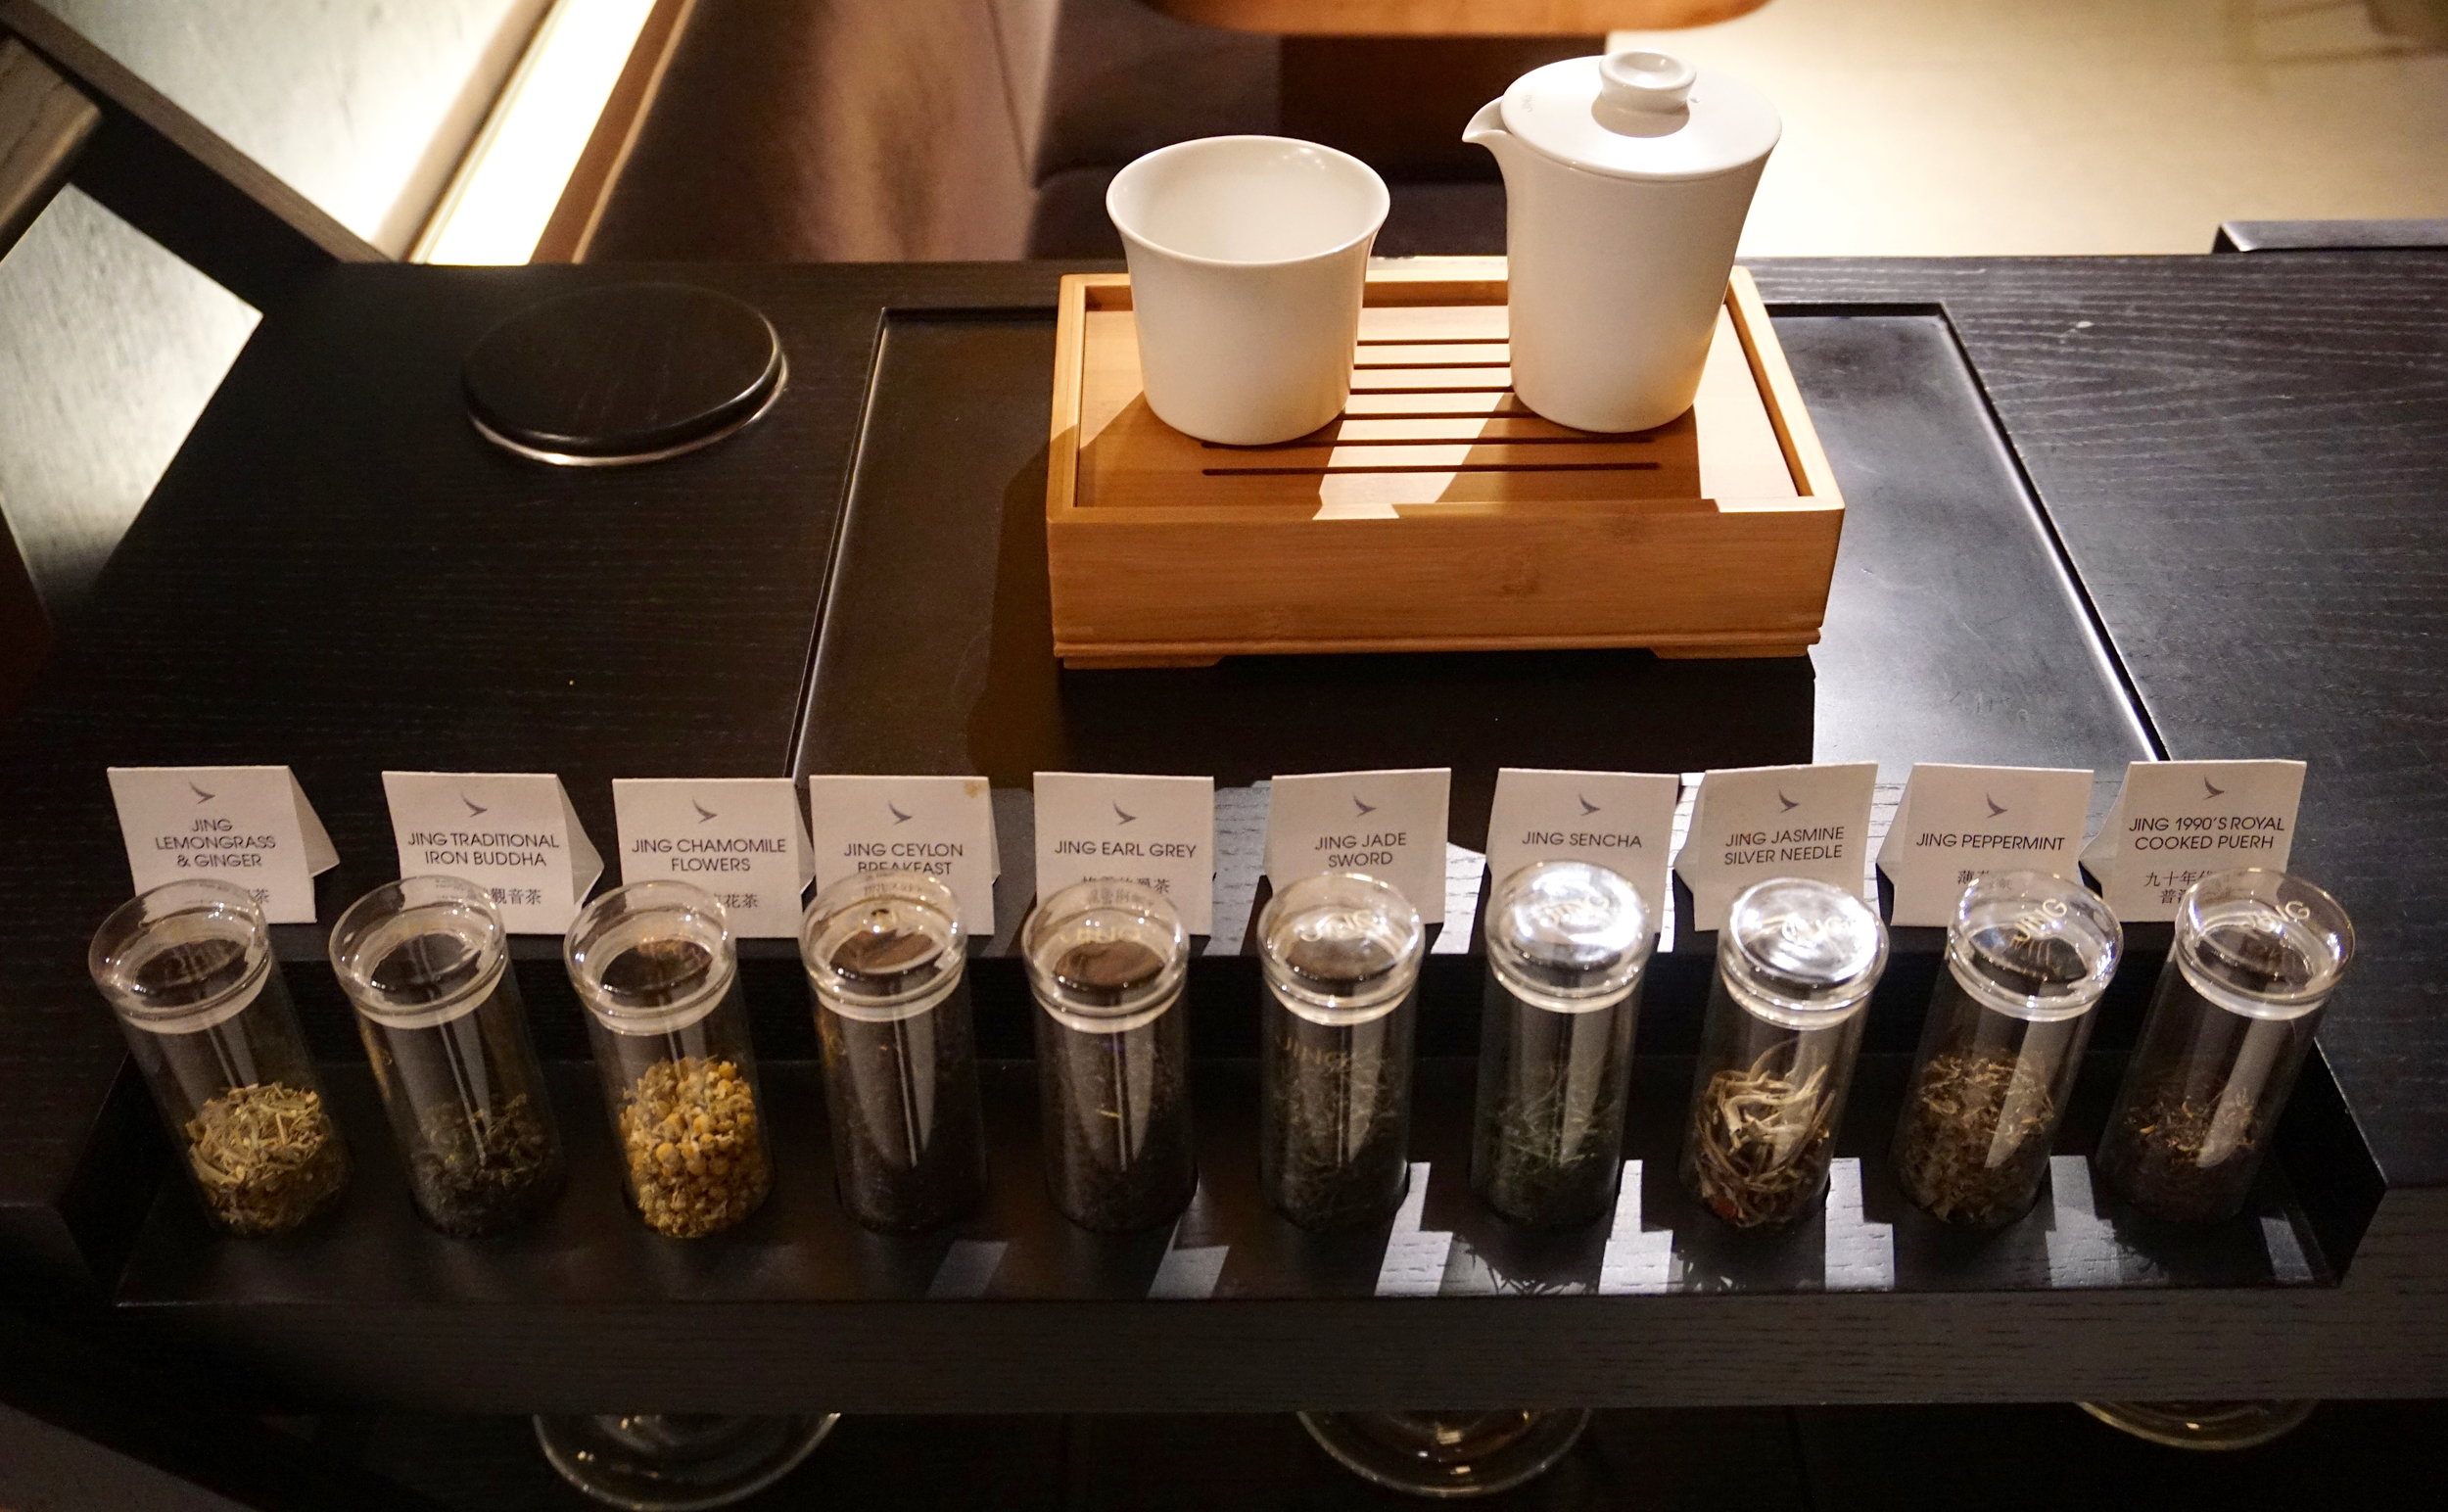 Wide variety of Jing tea selection